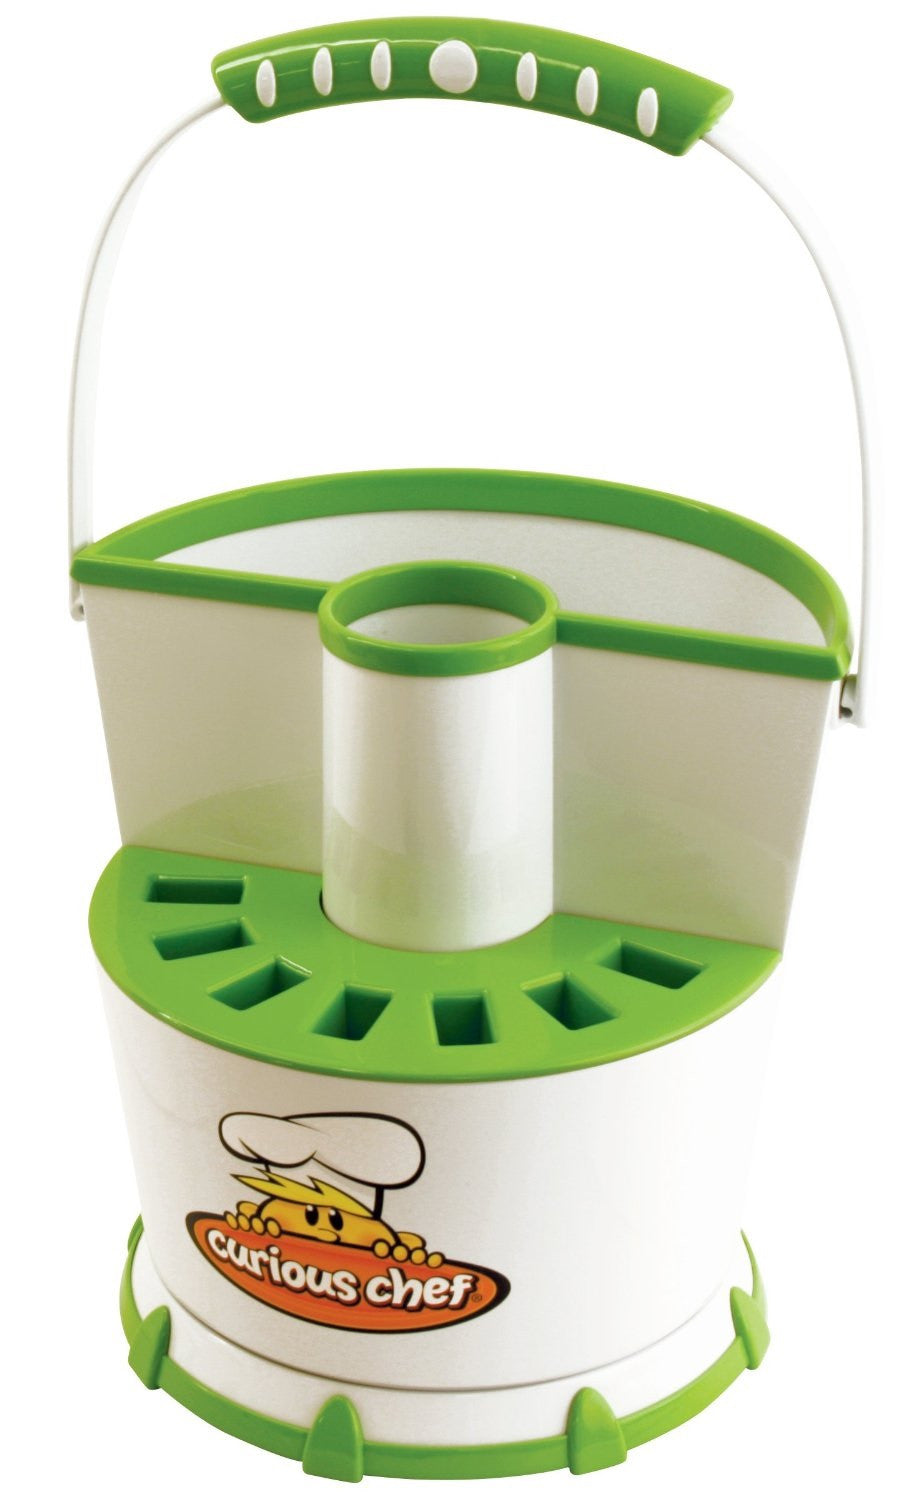 Curious Chef Utensil Cooking Tool Caddy - Off The Wall Toys and Gifts